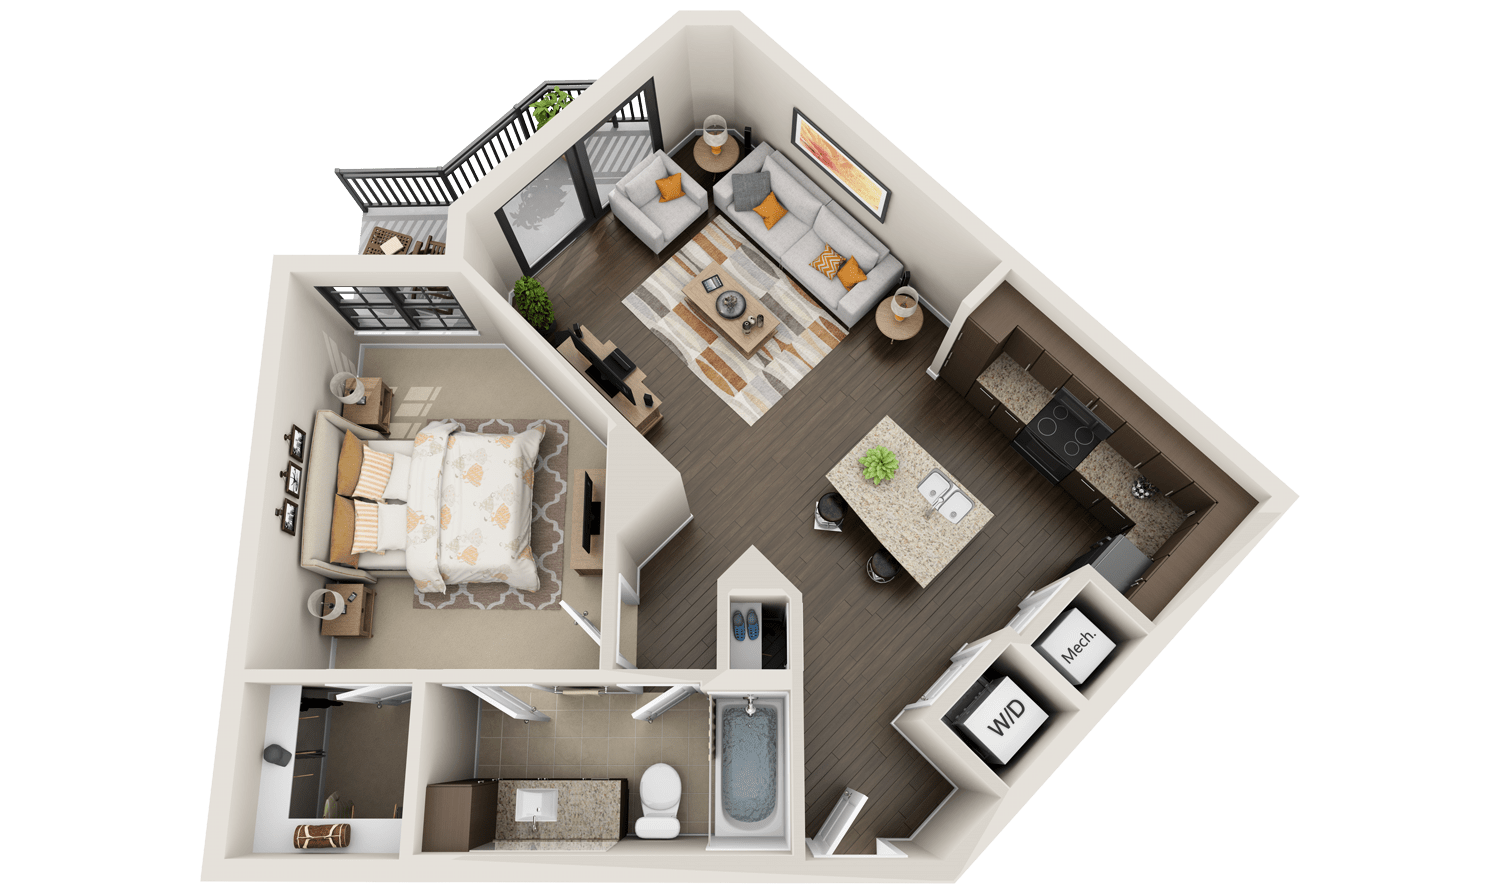 3d floor plans for apartments get your quote now for 3d apartment floor plans